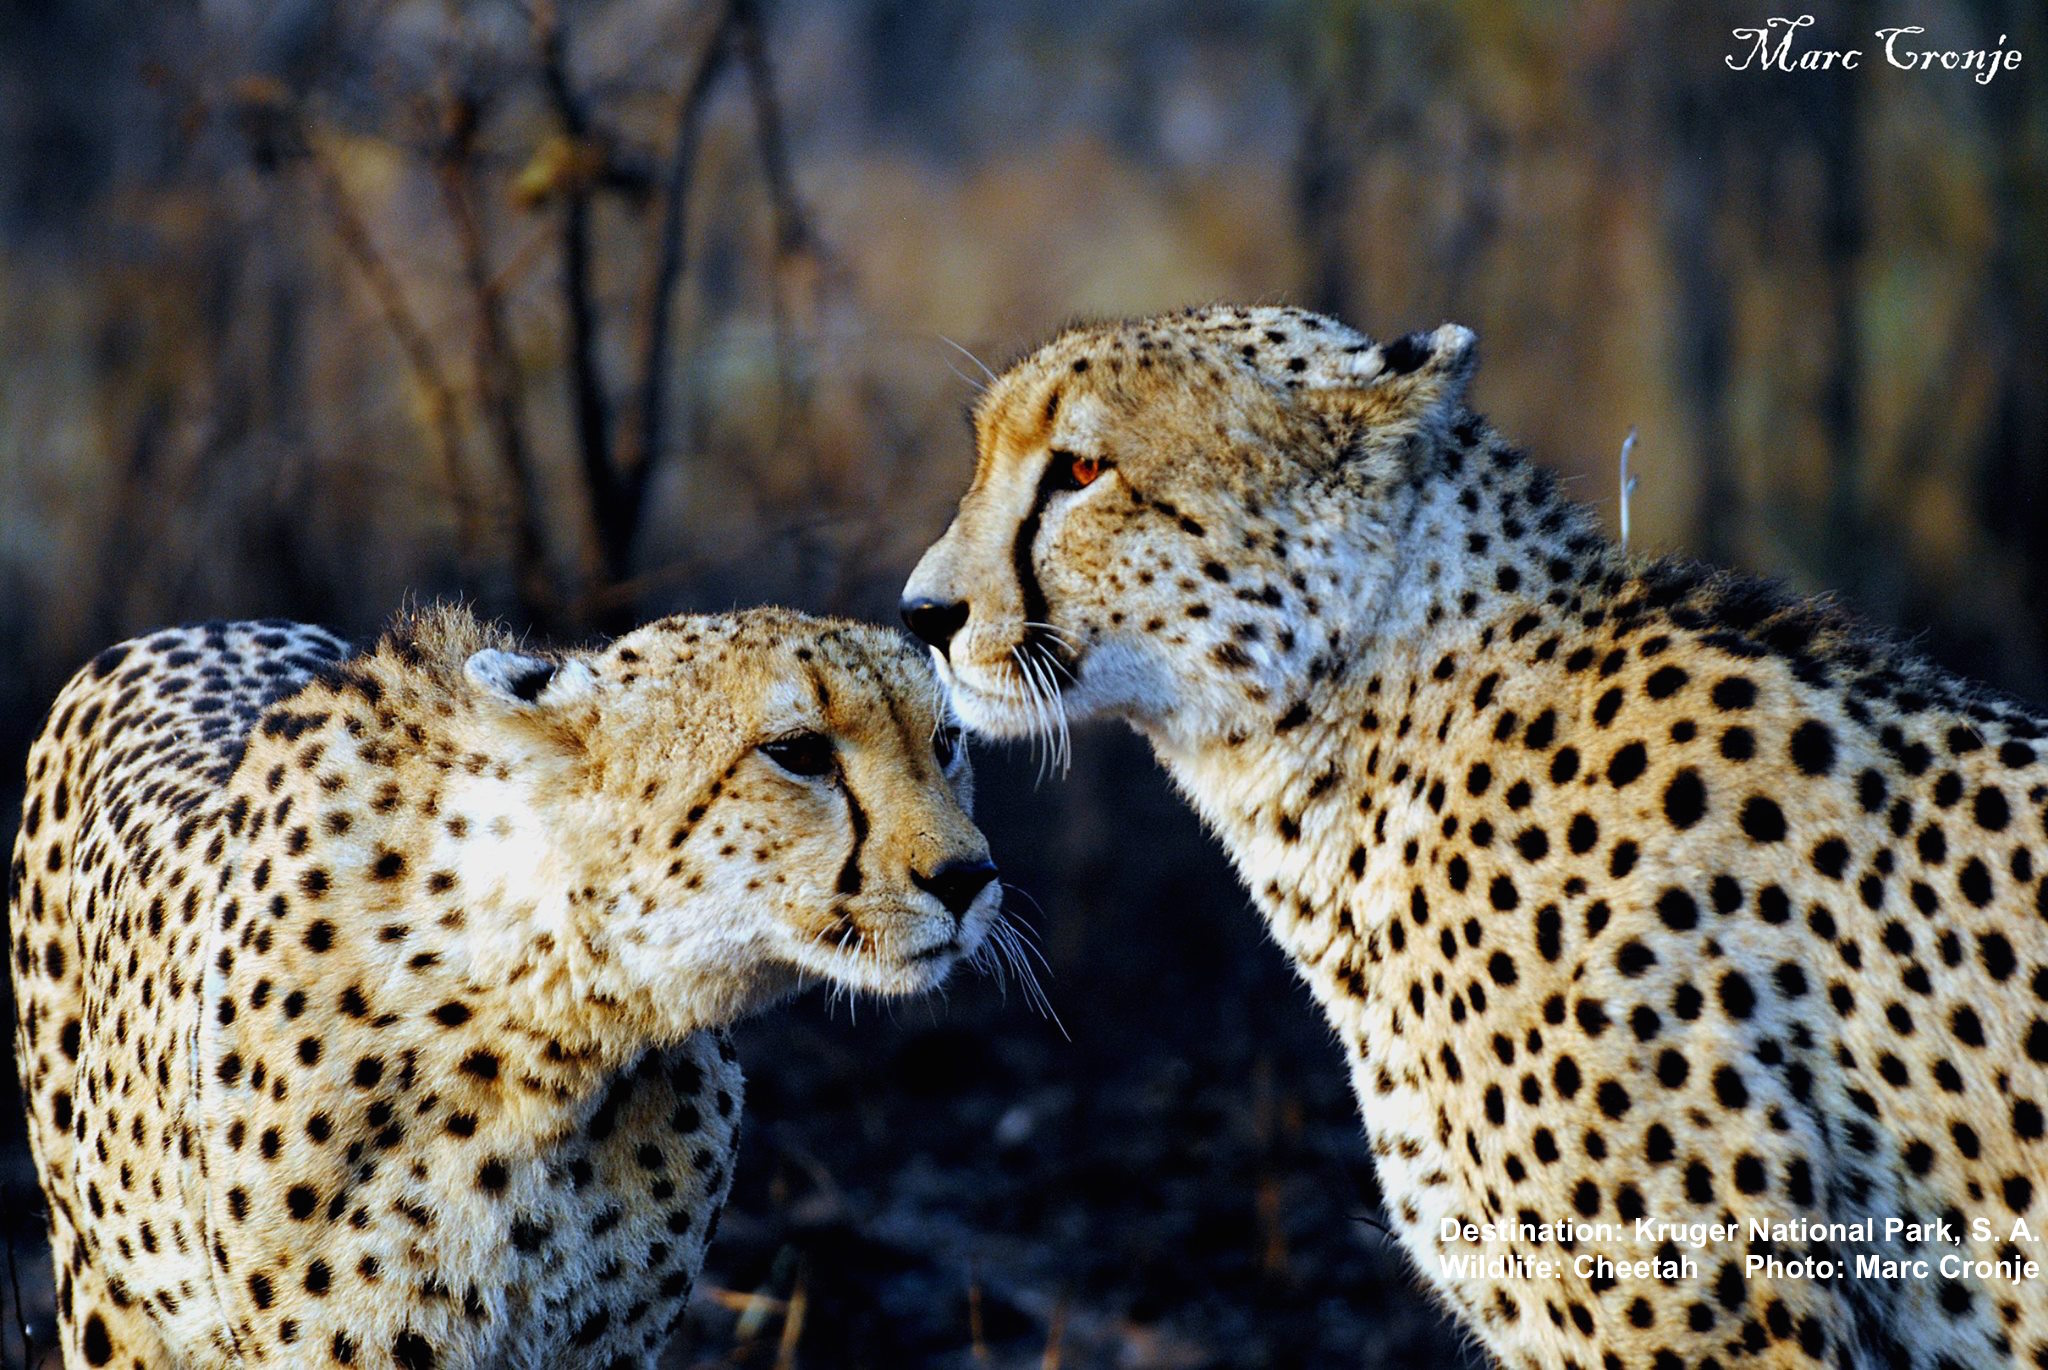 Cheetah mother and cub. Watchng the youngsters grow up is a source of never-ending joy for Marc and his guests. But he has also seen them die through human carelessness (car accidents) and poaching. Image: Marc Cronje, Independent Field Guide.